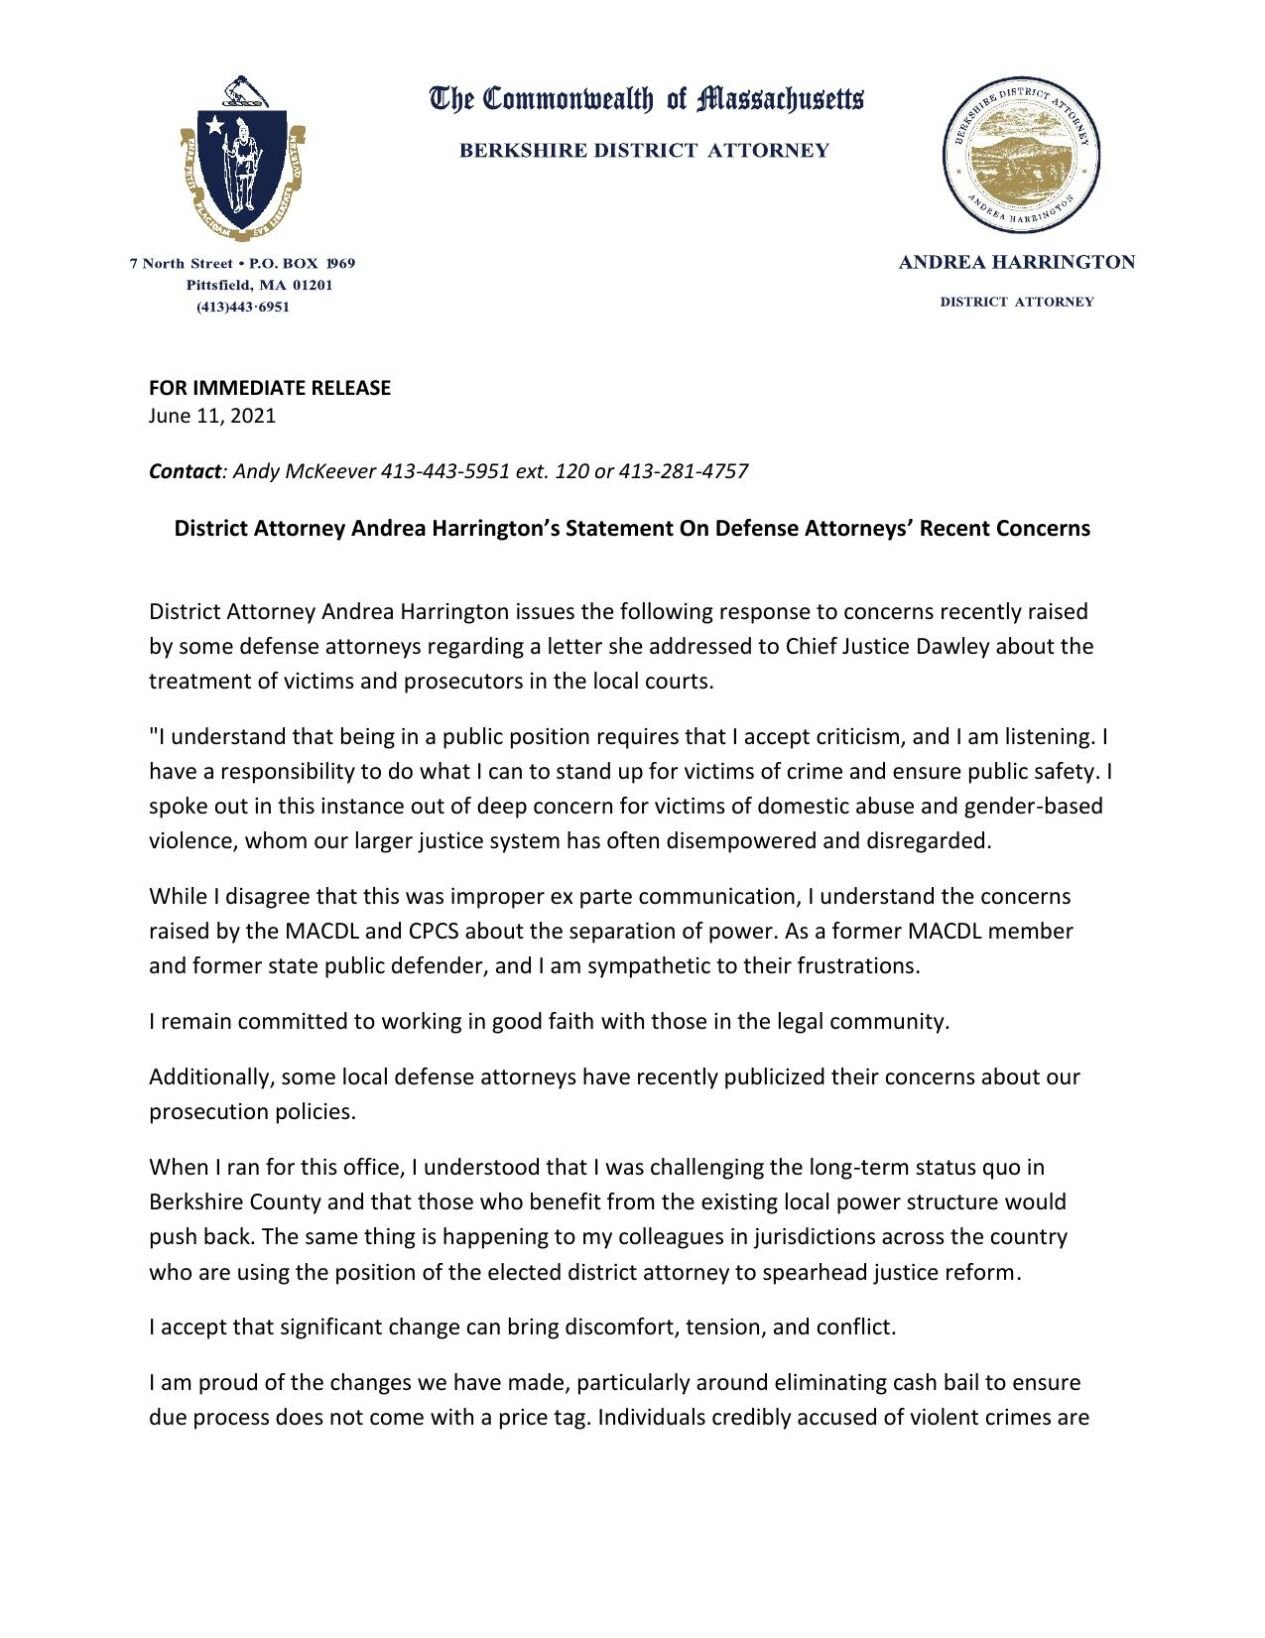 District Attorney Andrea Harrington press release issued Friday